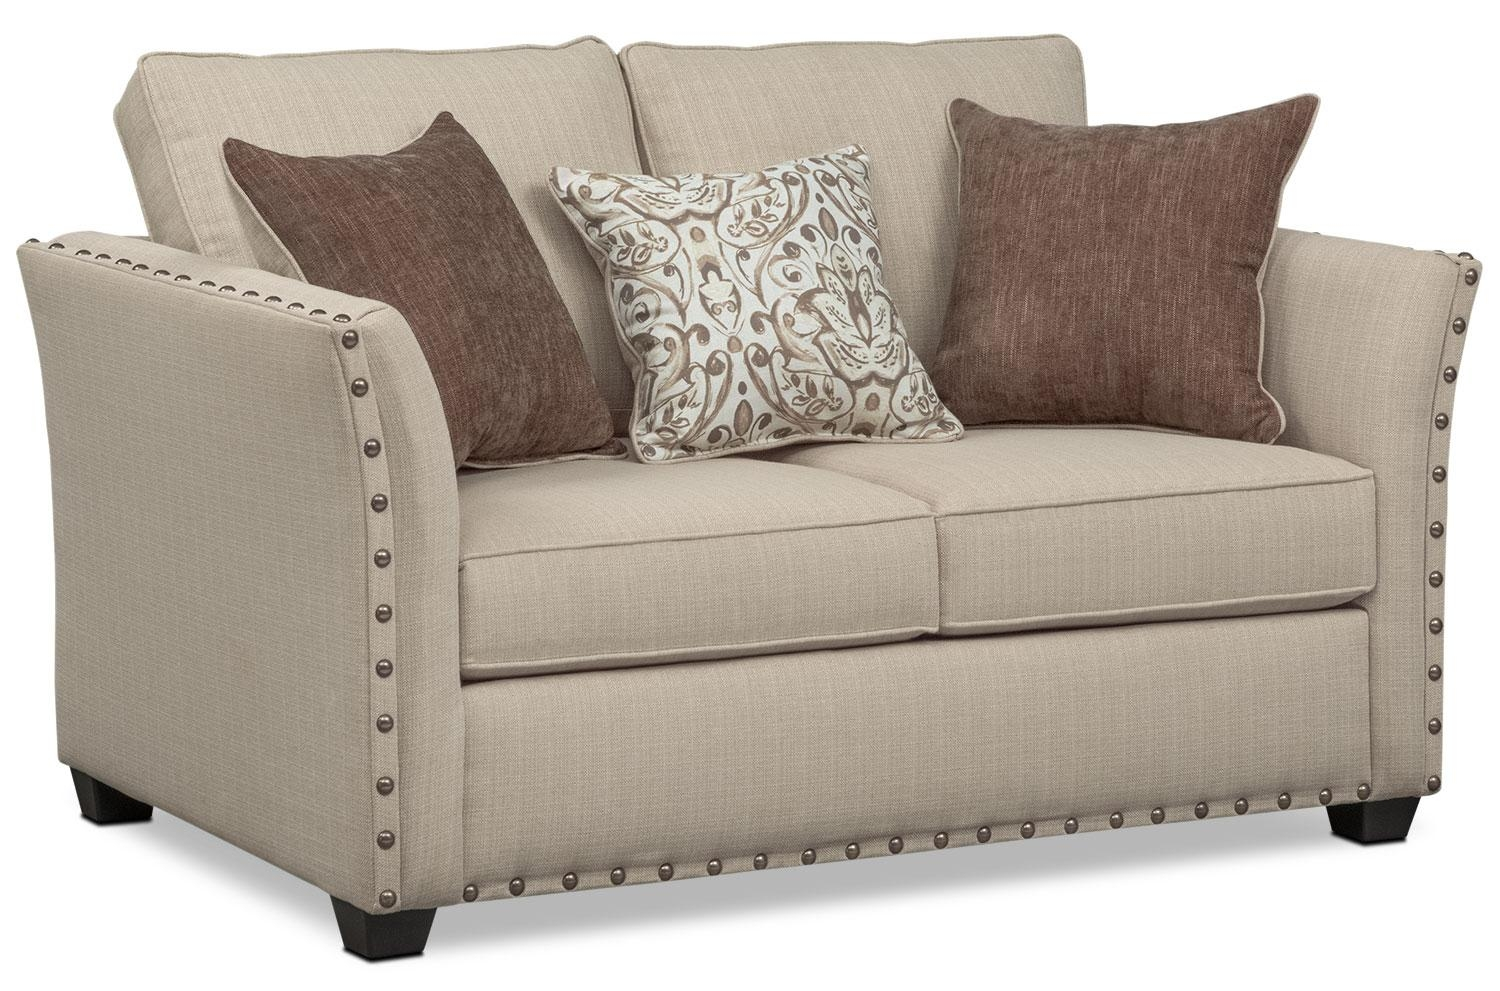 Mckenna Queen Memory Foam Sleeper Sofa, Loveseat, And Chair Set Regarding Sofa And Chair Set (View 17 of 20)